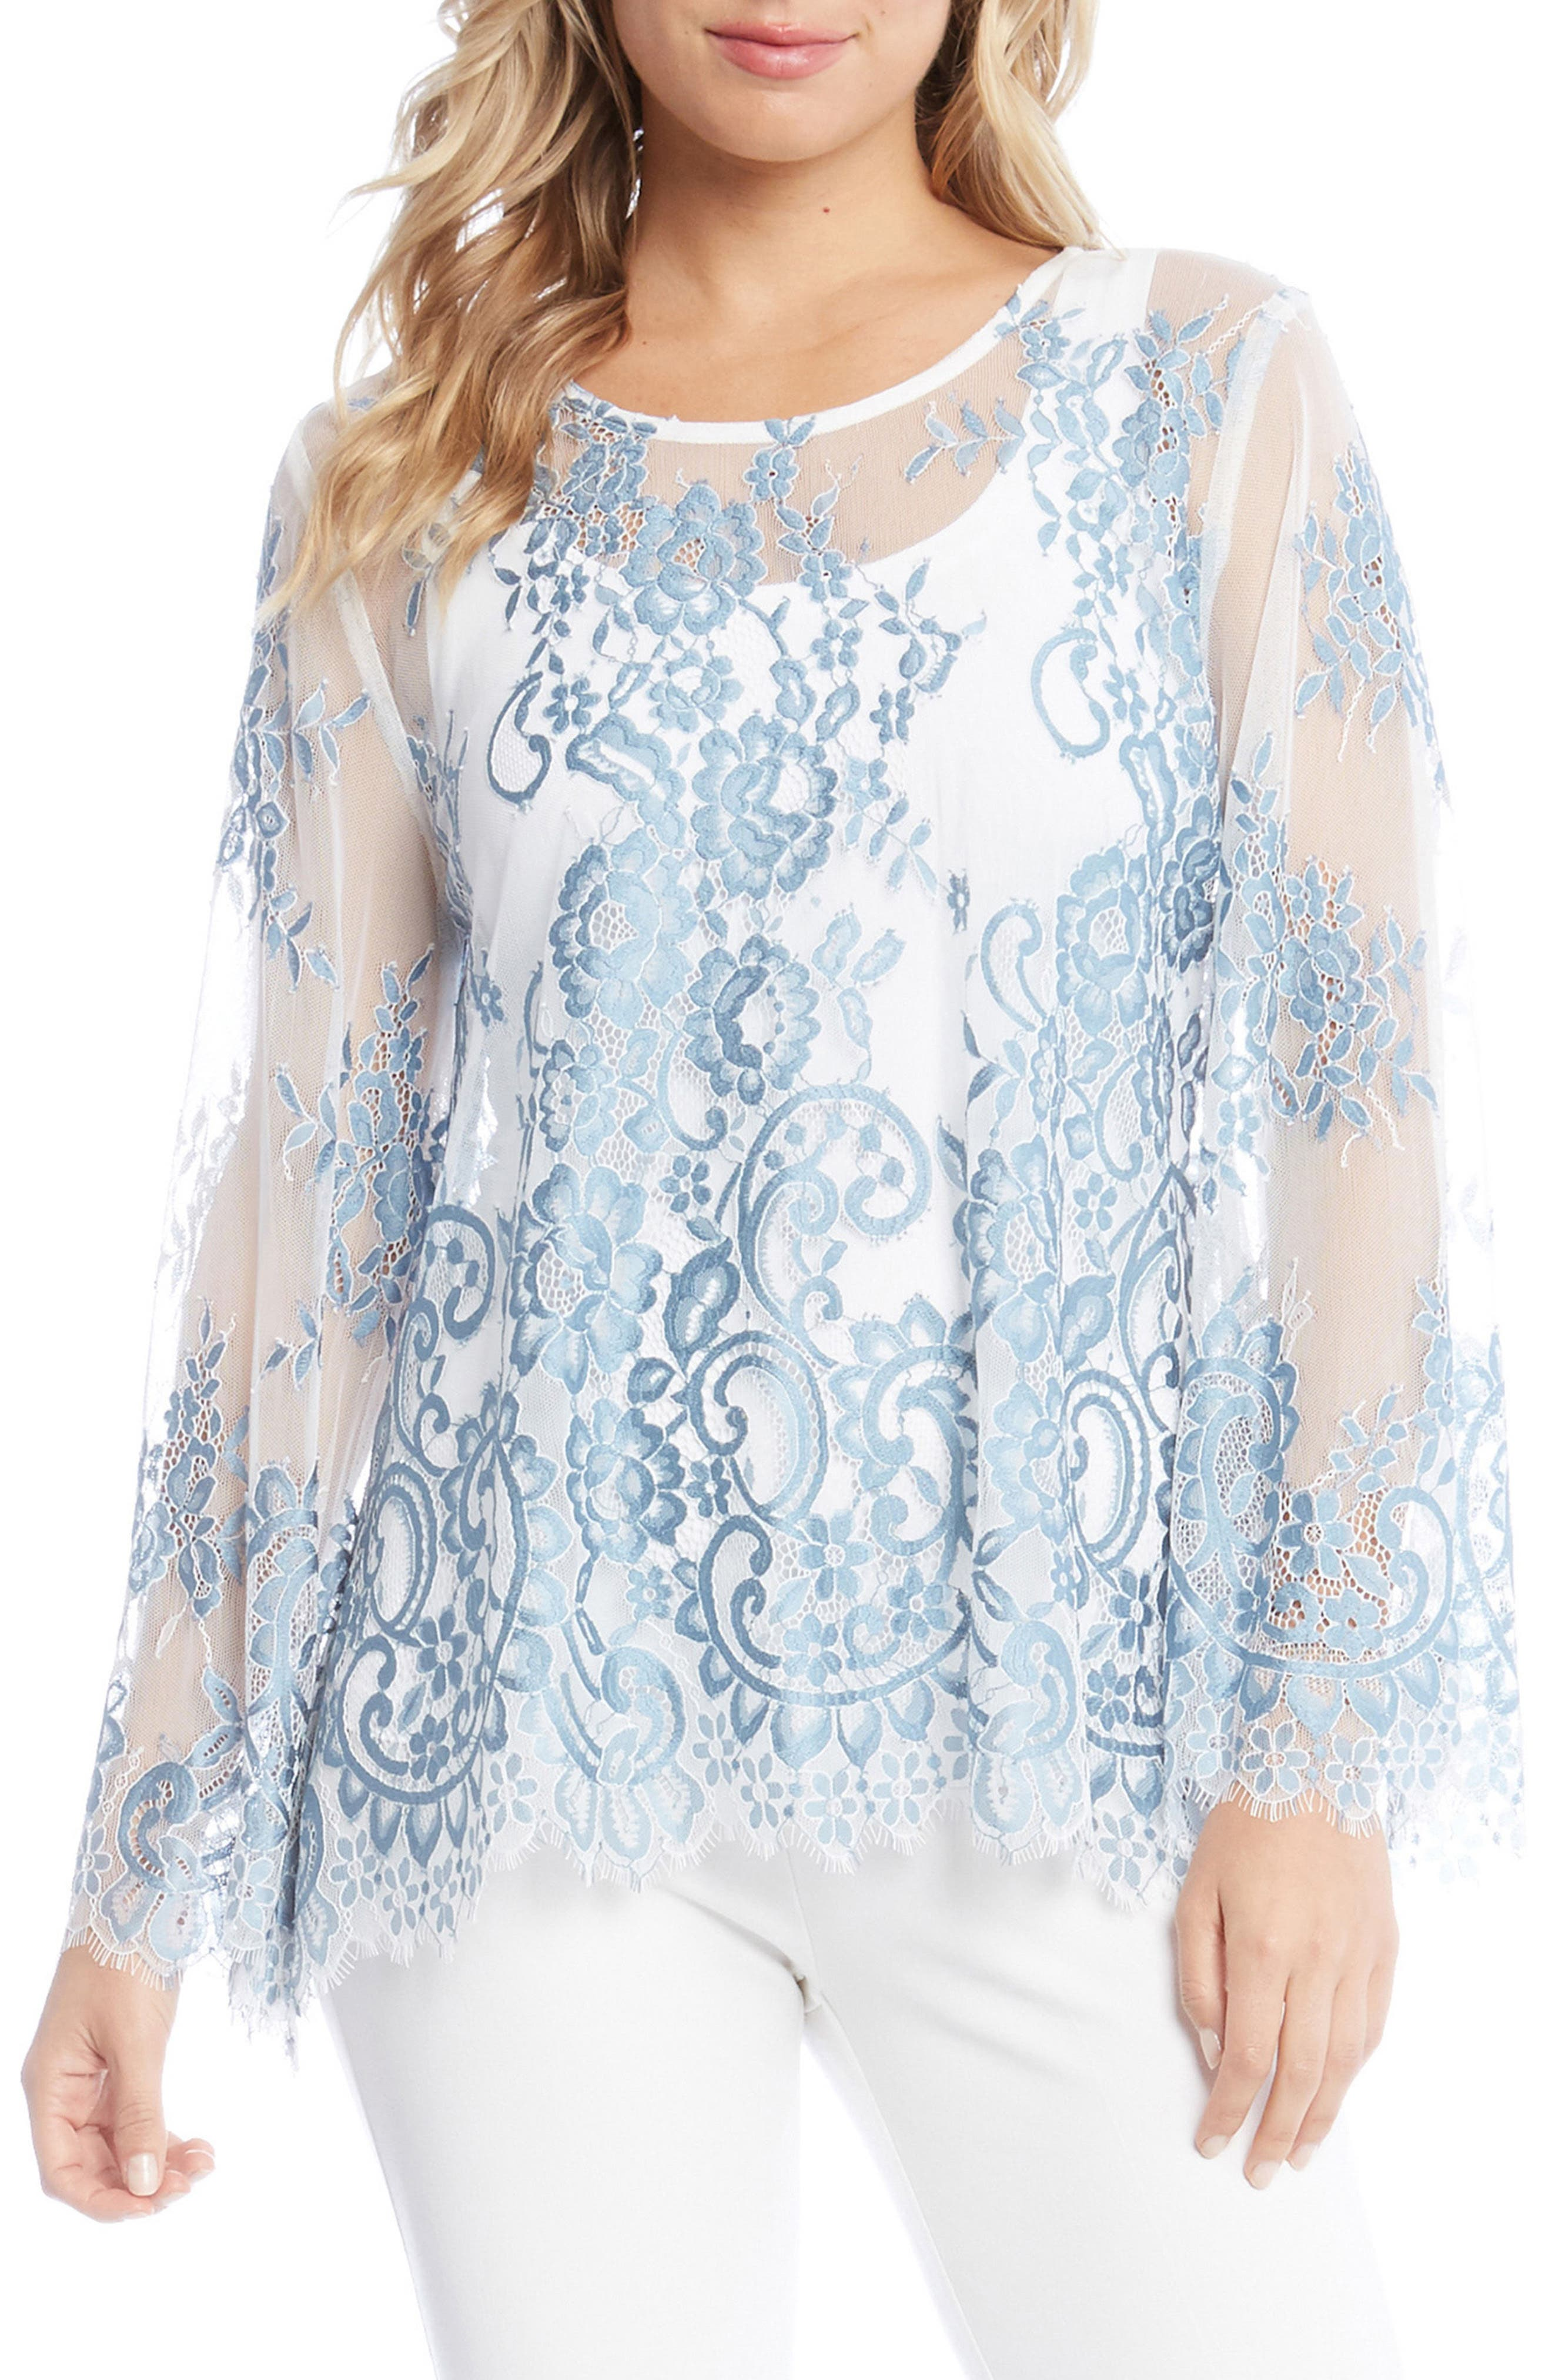 Embroidered Floral Lace Top,                         Main,                         color, 451